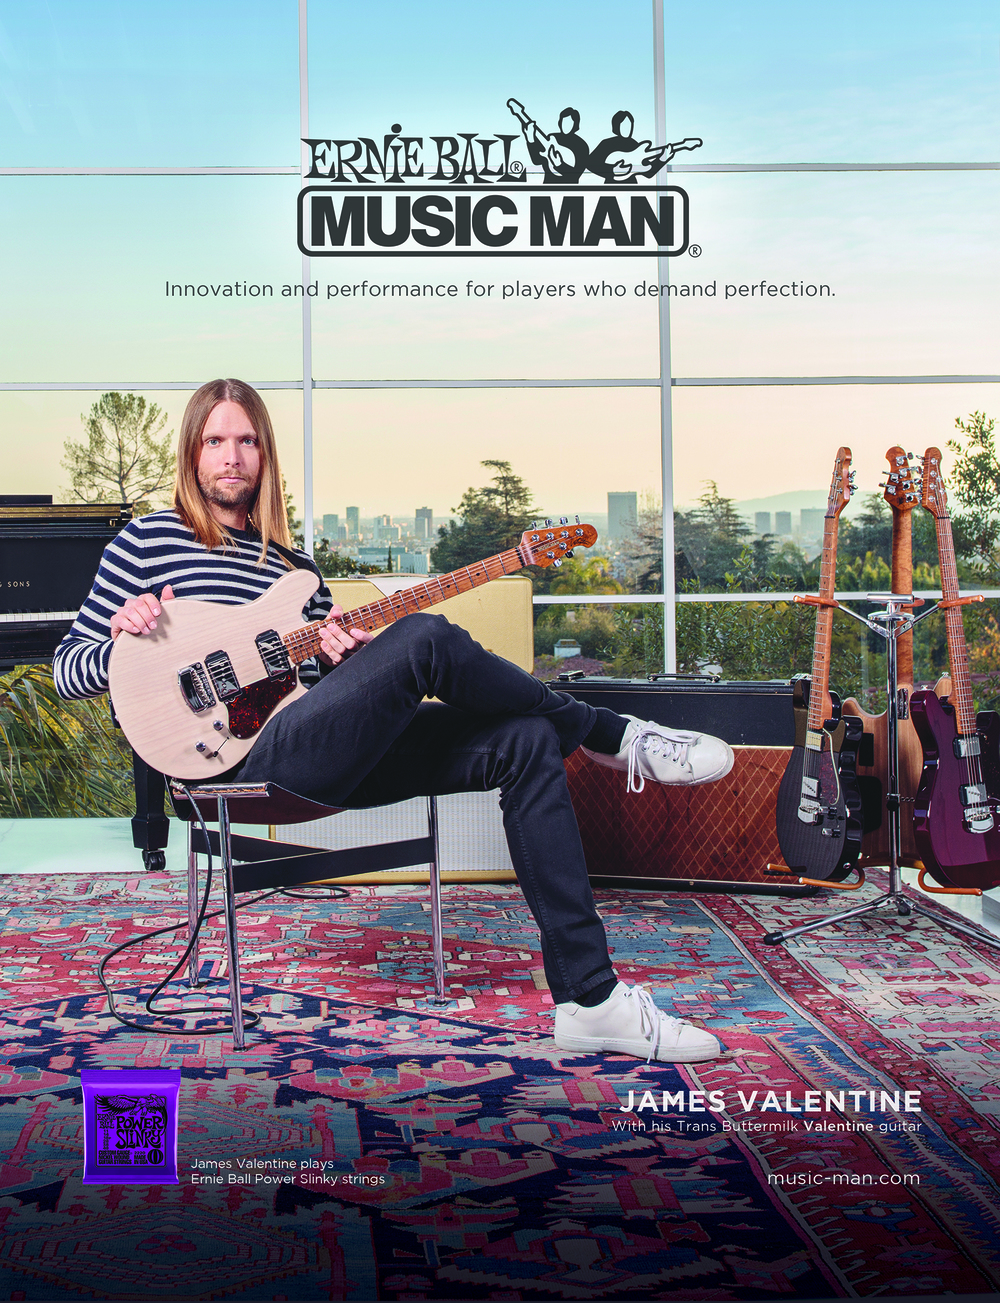 Ernie Ball Music Man -- Print Ads / Website